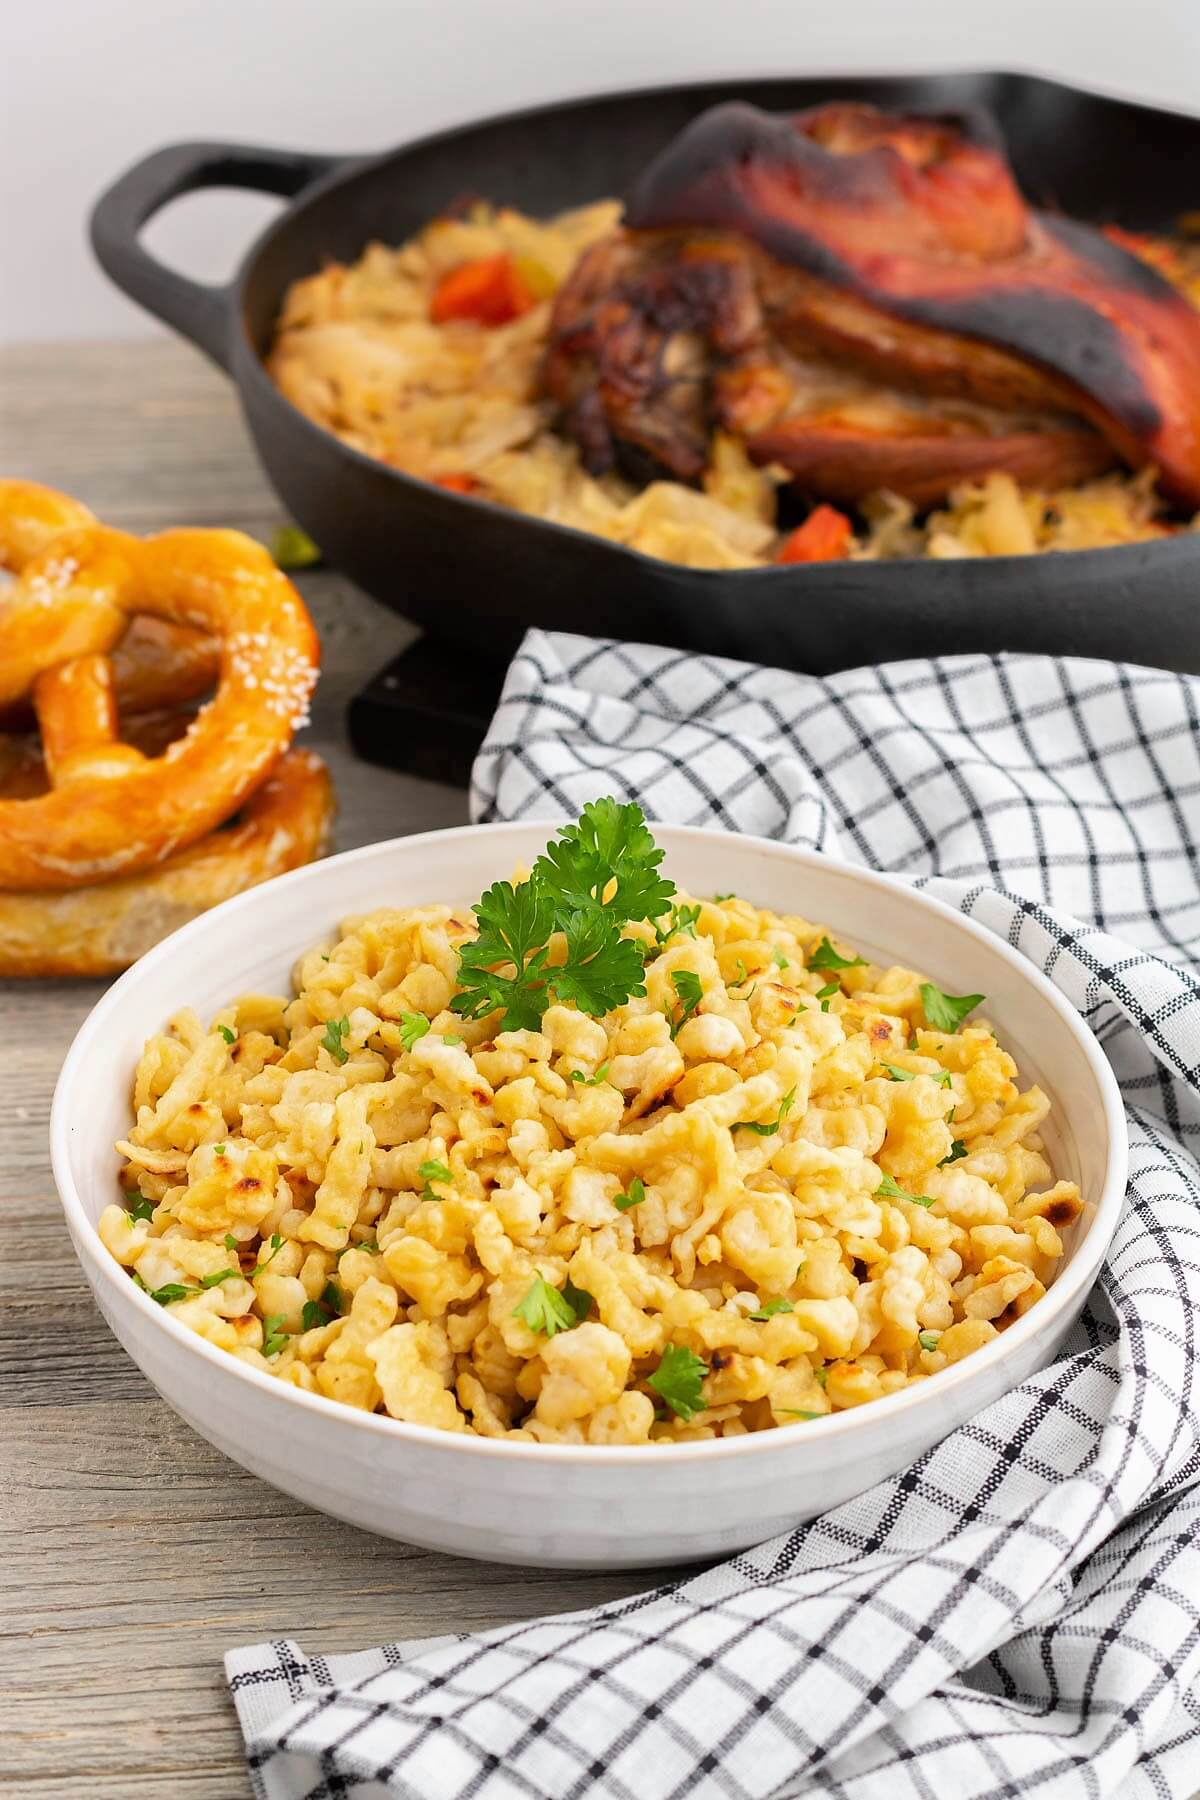 A low white bowl filled with homemade spaetzle noodles garnished with parsley in front of a roasted pork knuckle.